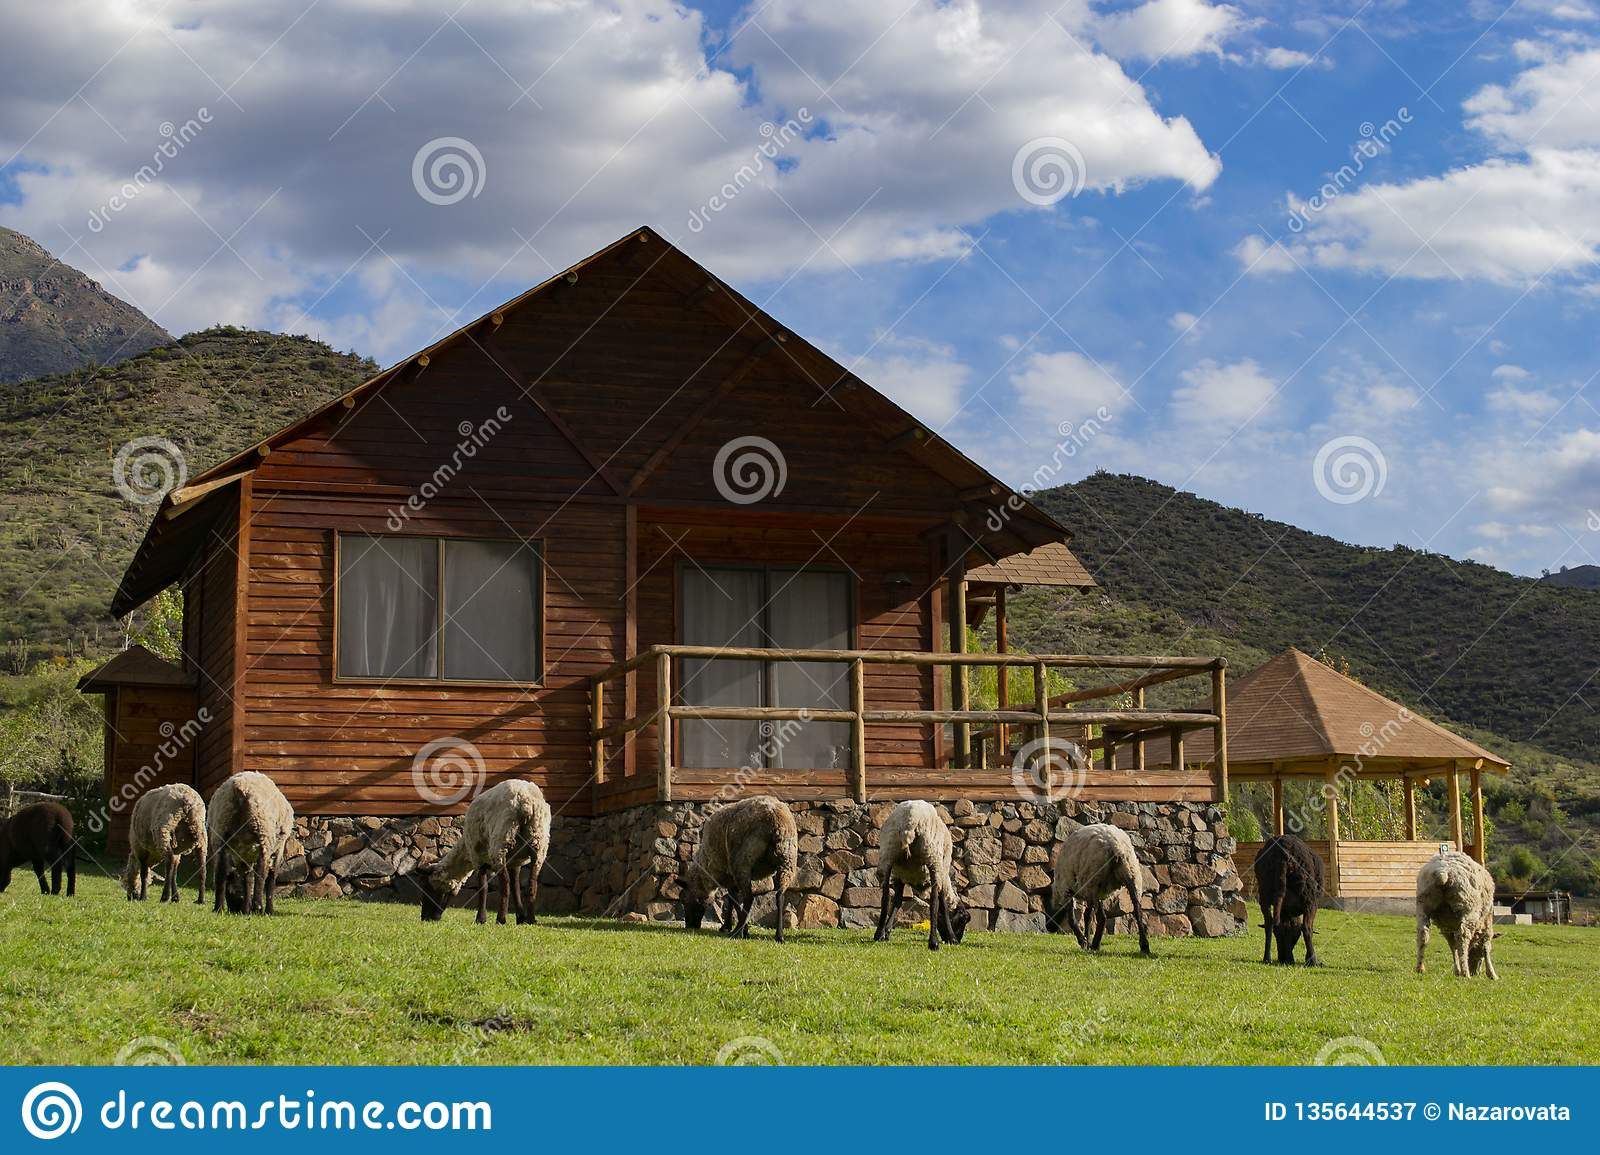 Sheep graze in front of a wooden house